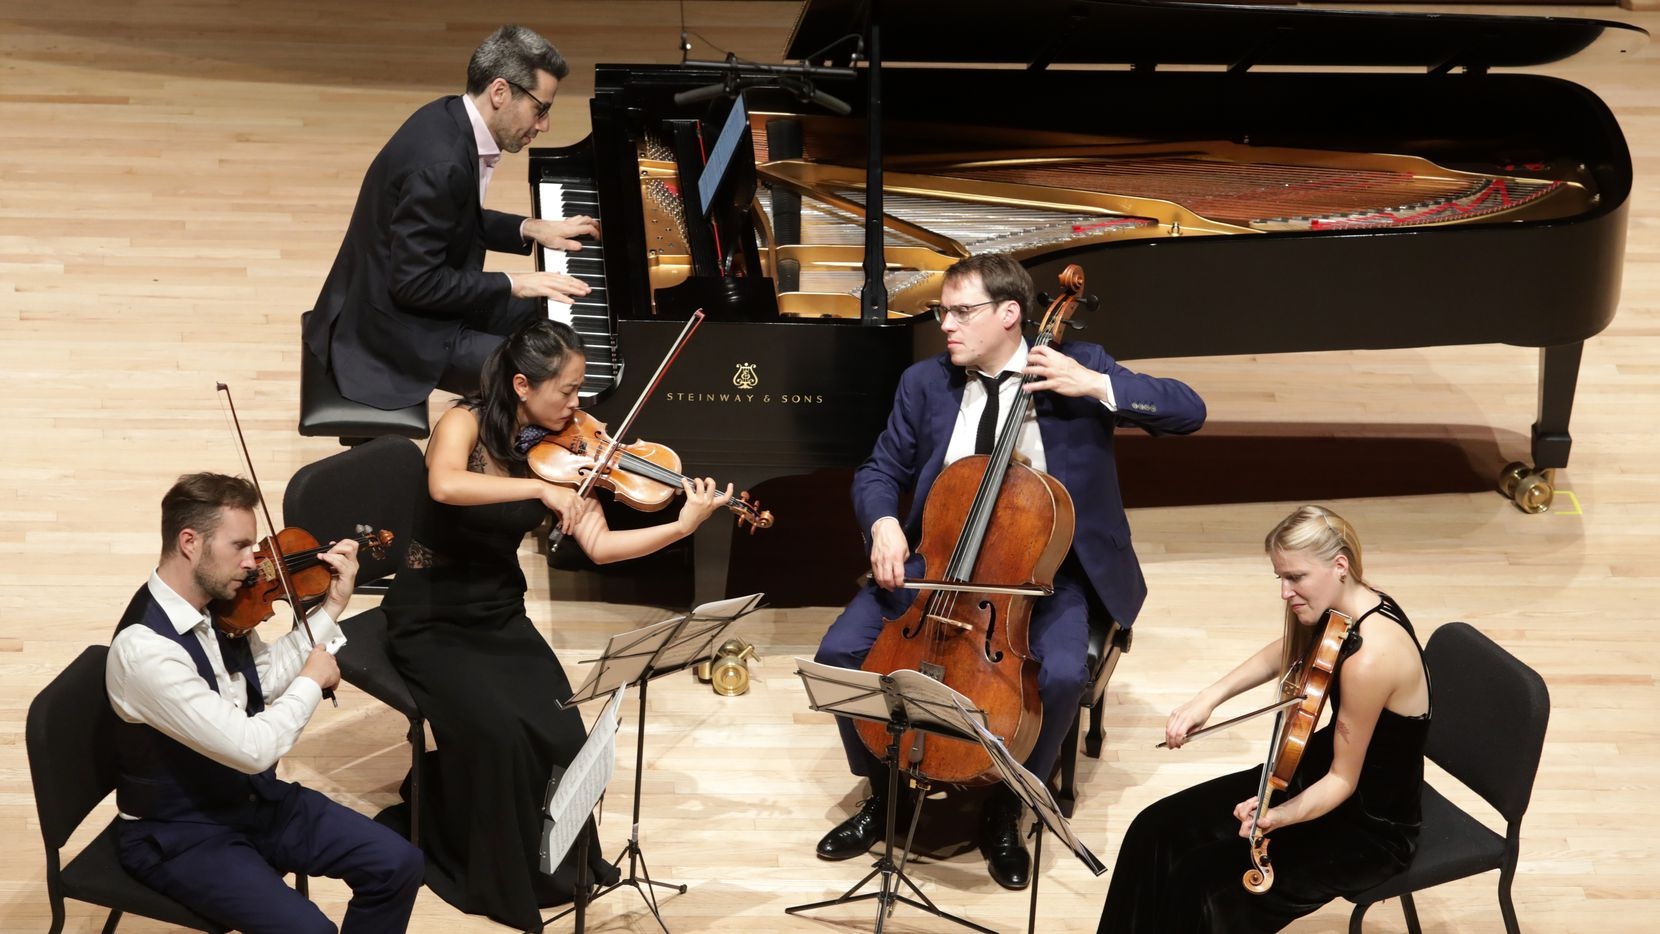 Doric String Quartet, with pianist Jonathan Biss, performs at SMU's Caruth Auditorium in Dallas on Oct. 11, 2021.